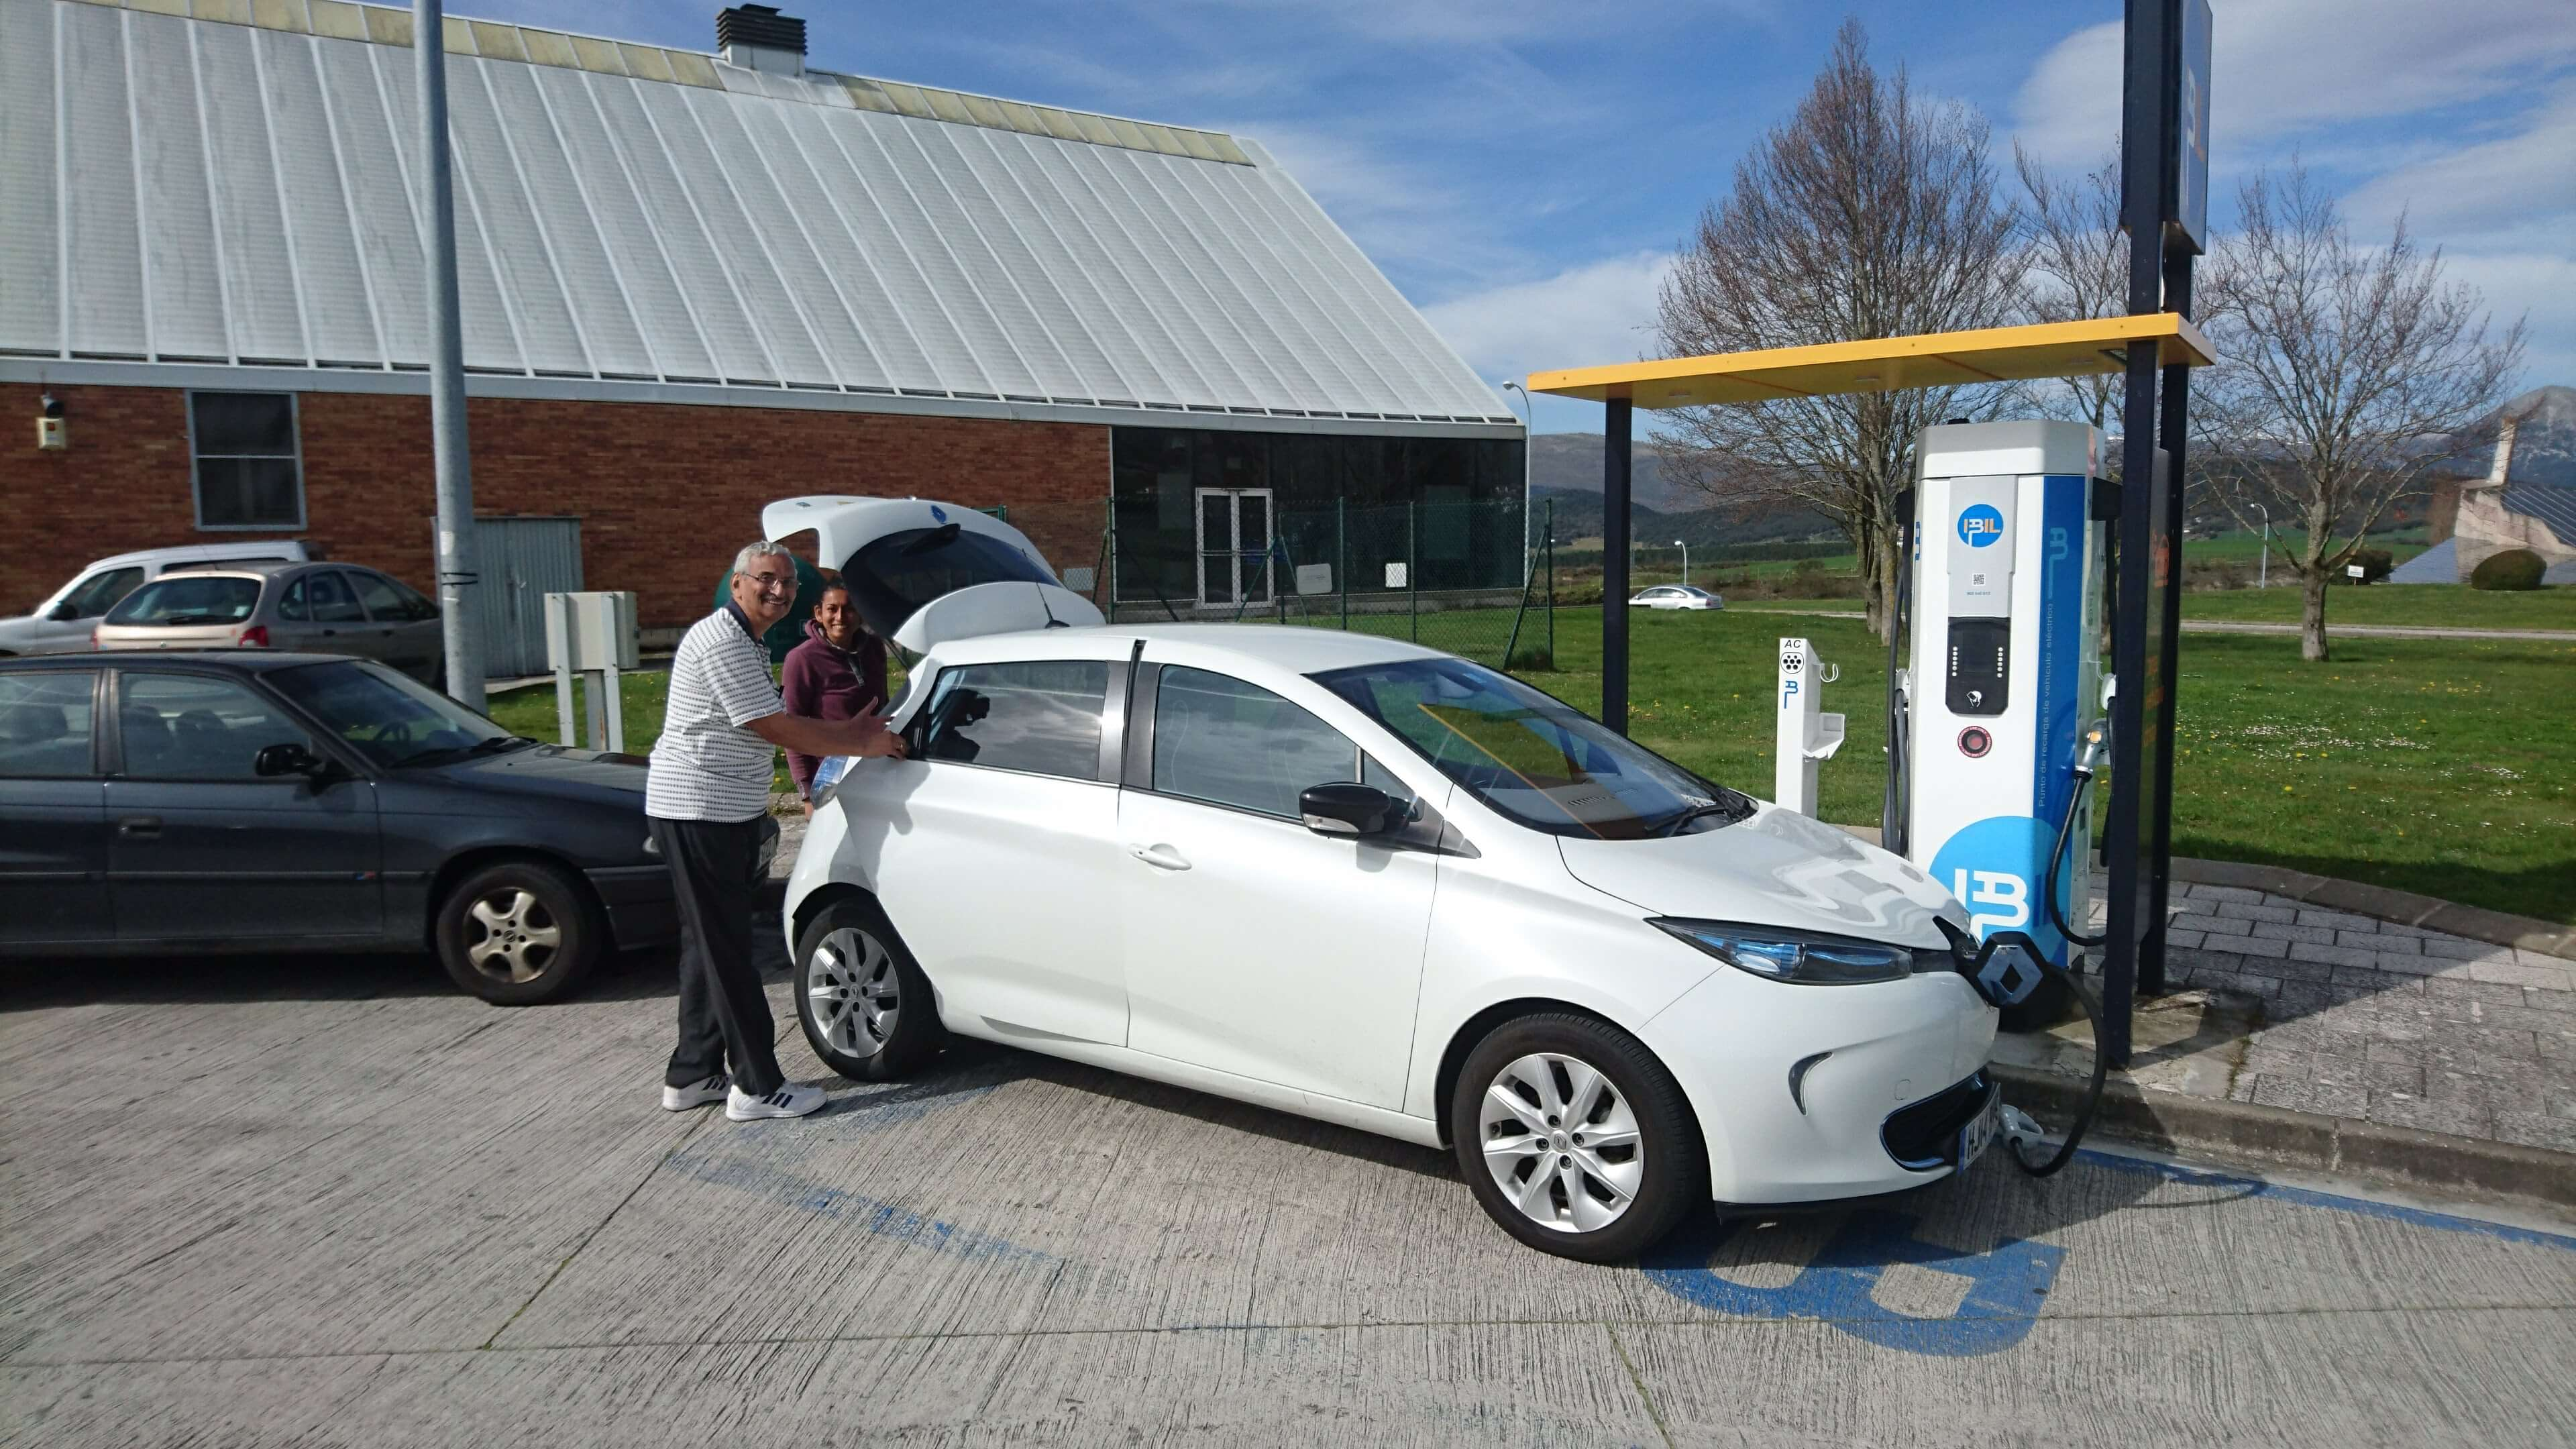 Charging a Renault Zoe at a service station